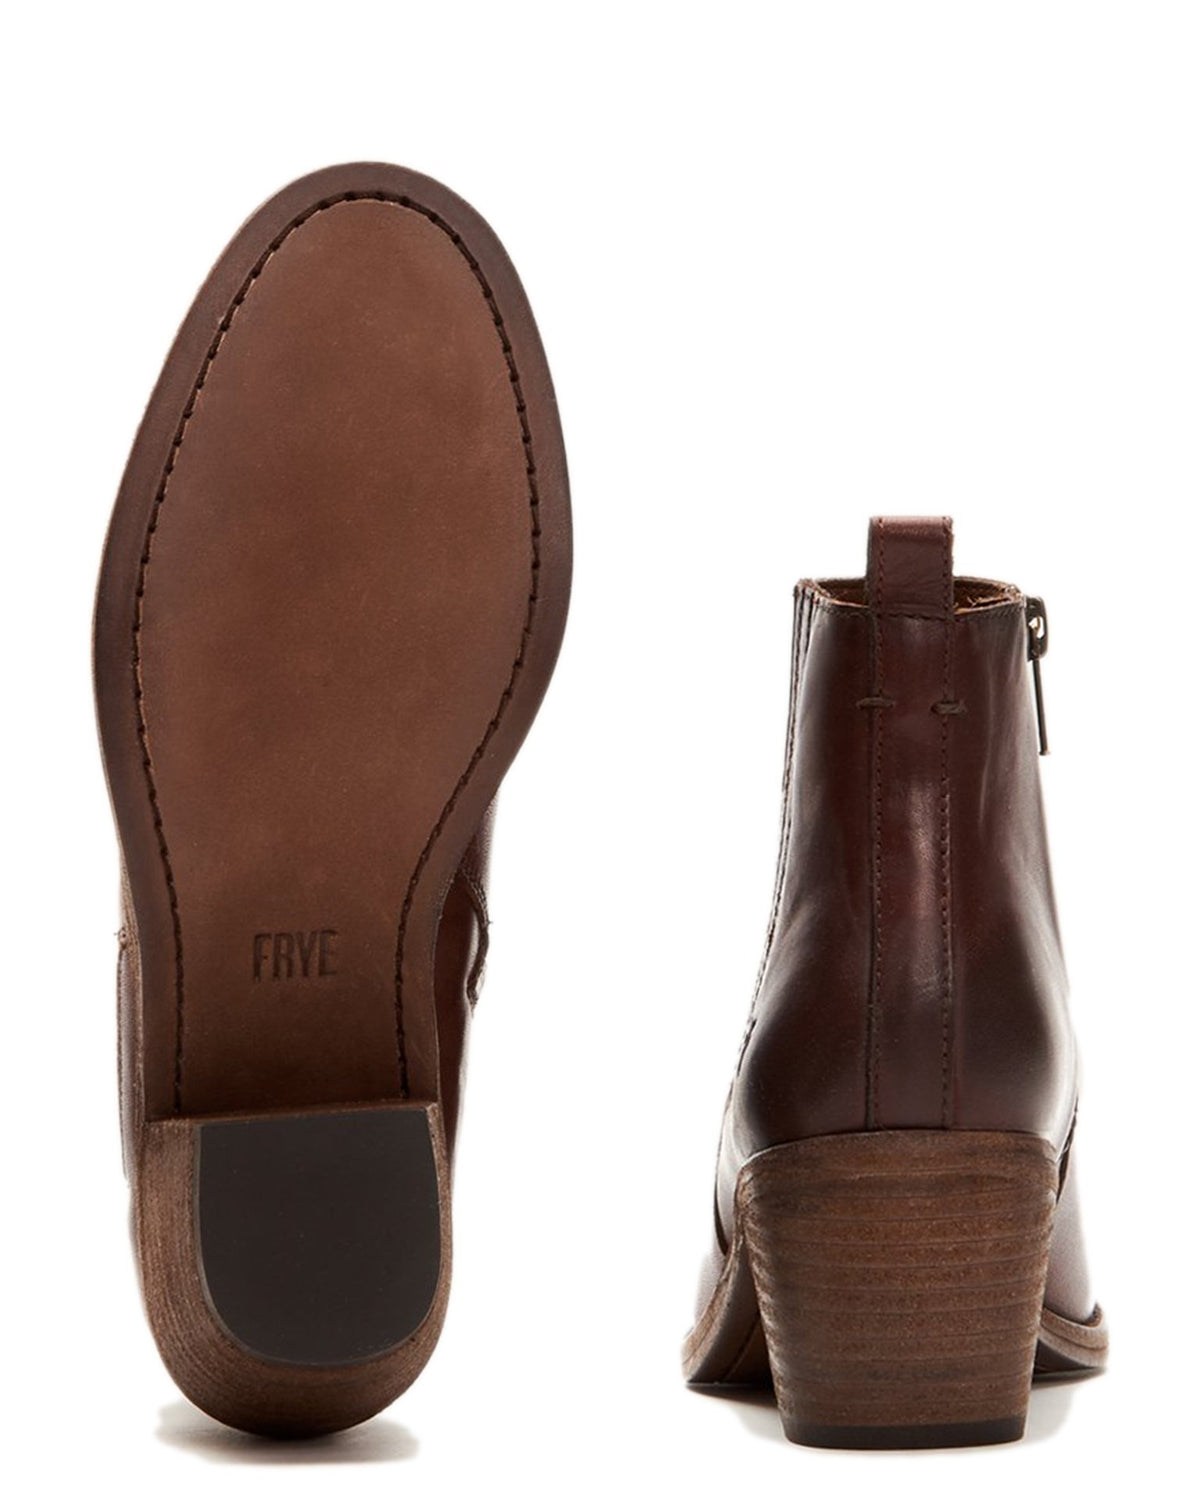 The Frye Company Shoes Alton Chelsea